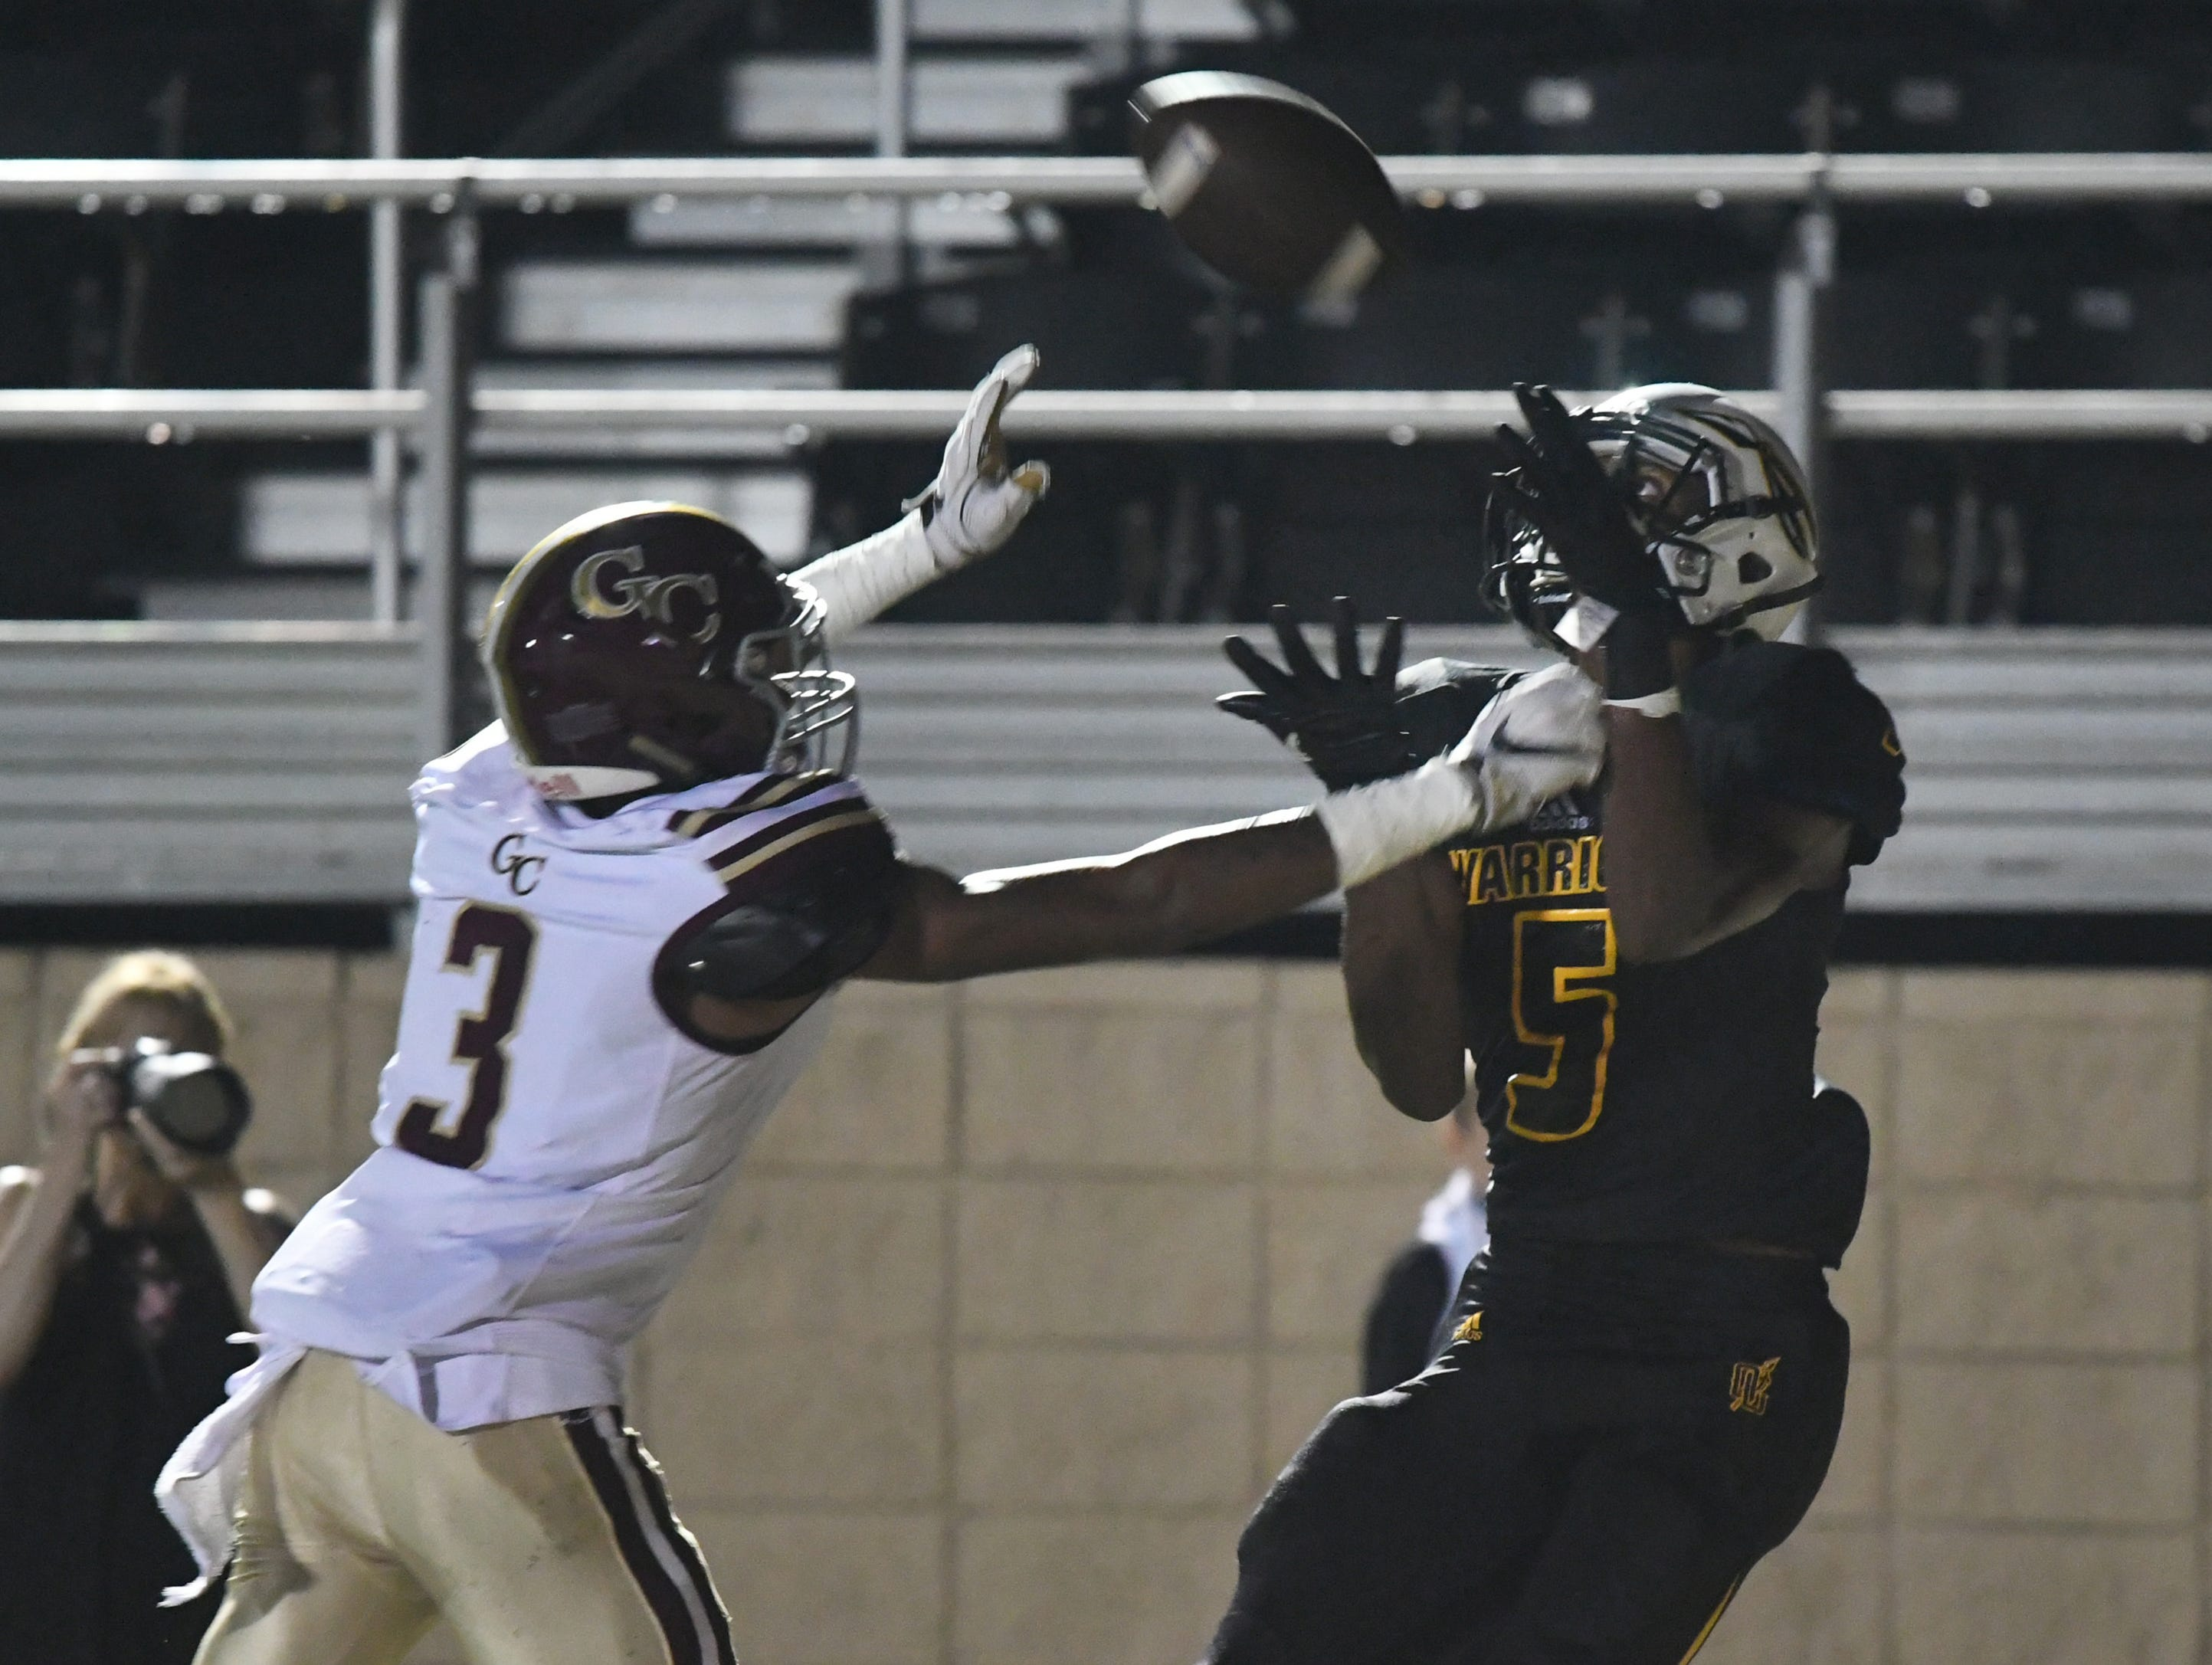 Oak Grove wide receiver Tavion Smith catches the ball in a game against George County in Hattiesburg on Friday, September 21, 2018.